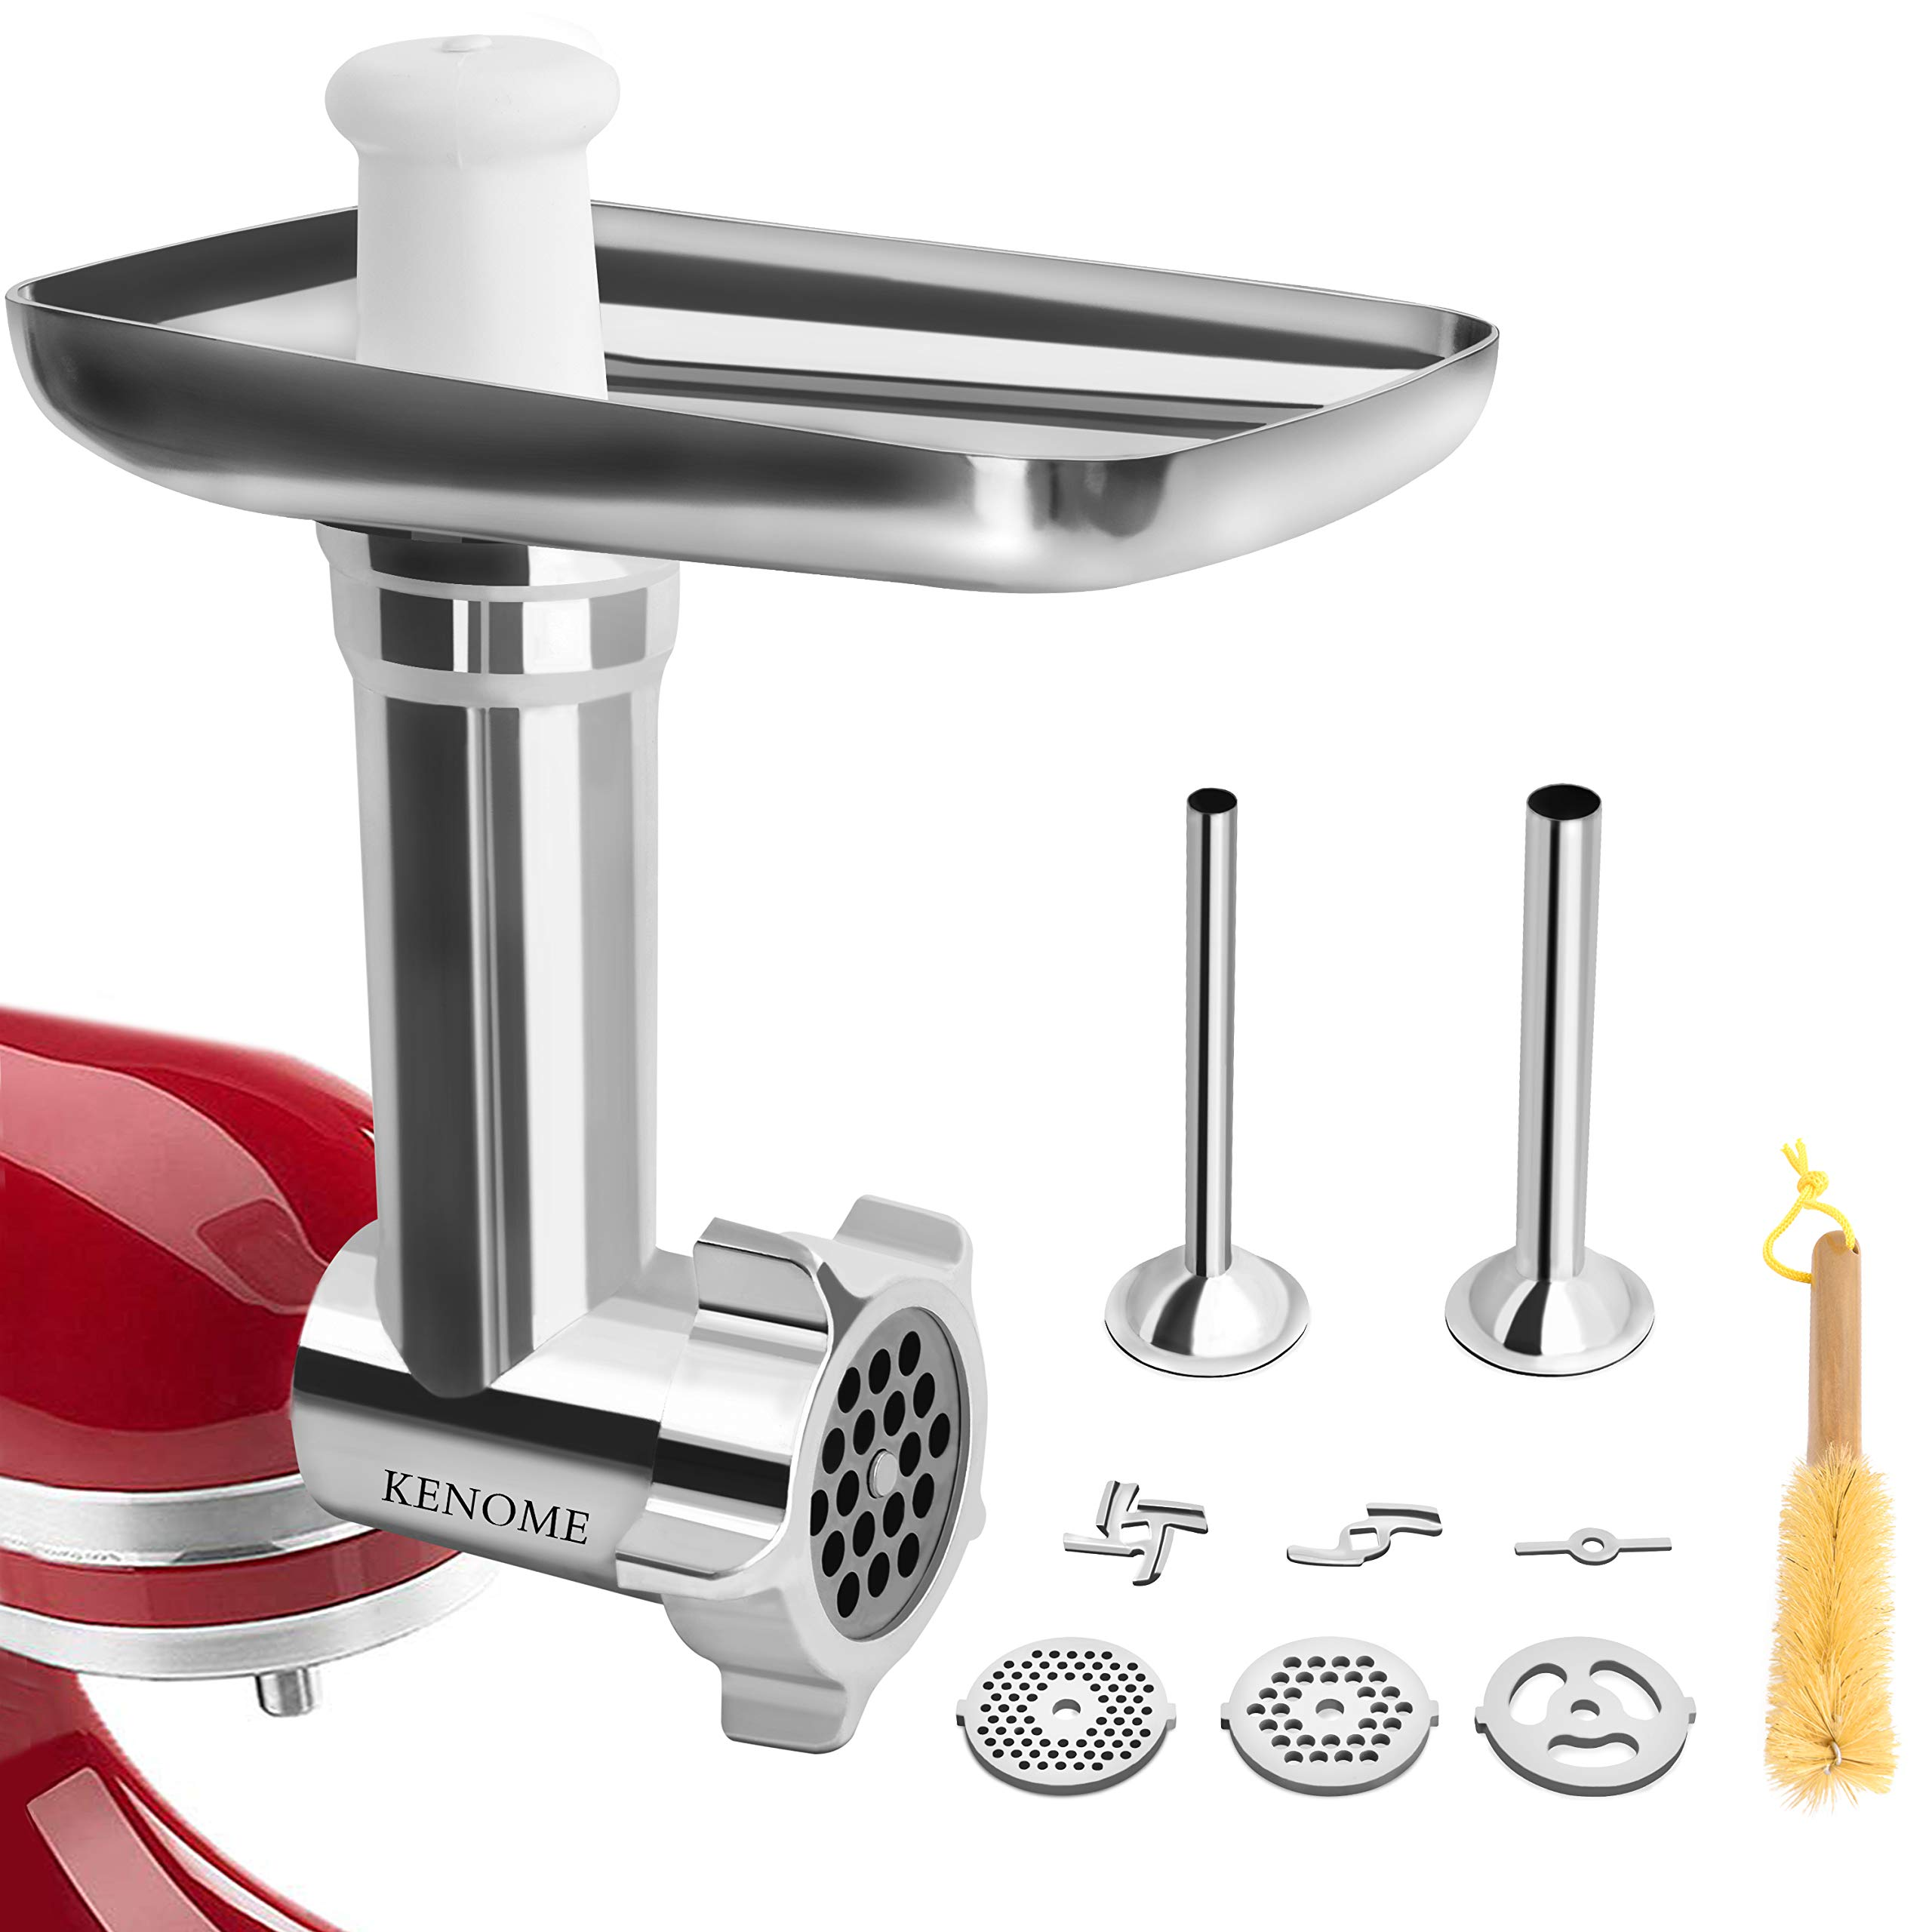 Metal Food Grinder Attachment for KitchenAid Stand Mixers Includes 2 Sausage Stuffer Tubes,Durable Meat Grinder Attachment for kitchenAid,Sliver by KENOME